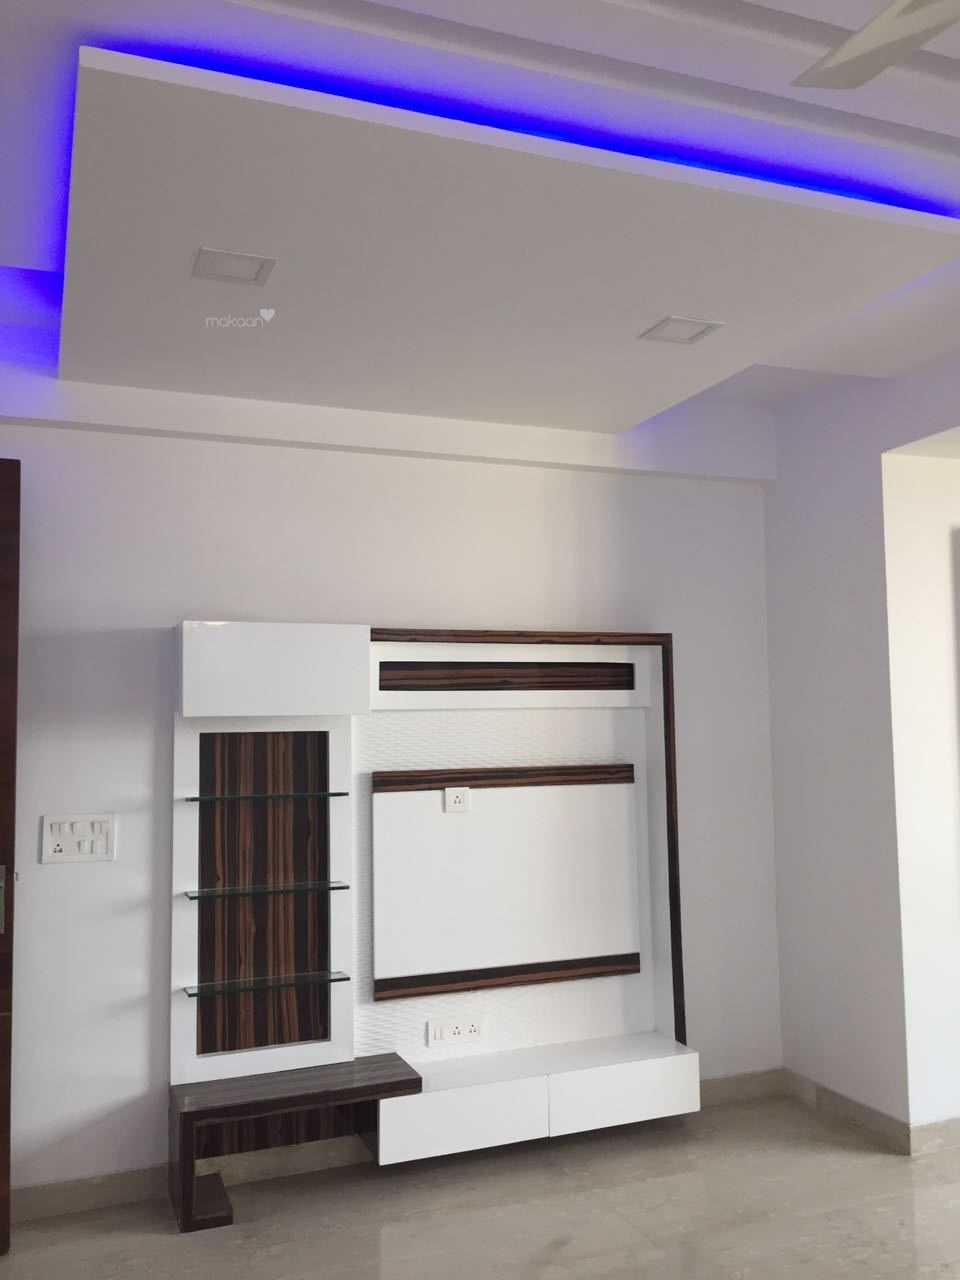 2700 sq ft 5BHK 5BHK+5T (2,700 sq ft) + Store Room Property By sinha real estate In Classic Apartment, Sector 12 Dwarka